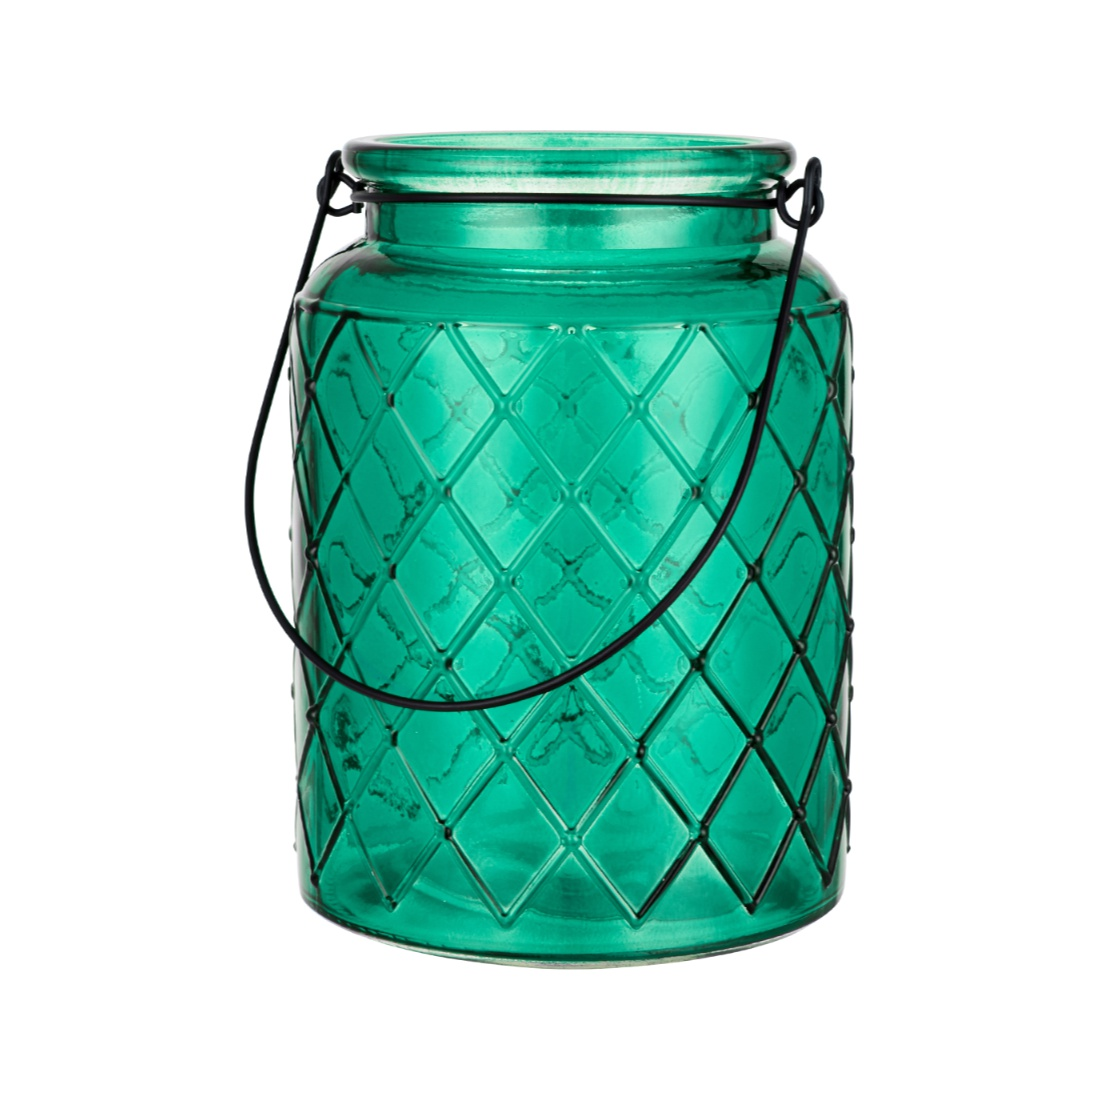 Verve Diamond Design Candle Holder Set of Two Emerld Glass Candle Holders in Emerald Colour by Living Essence